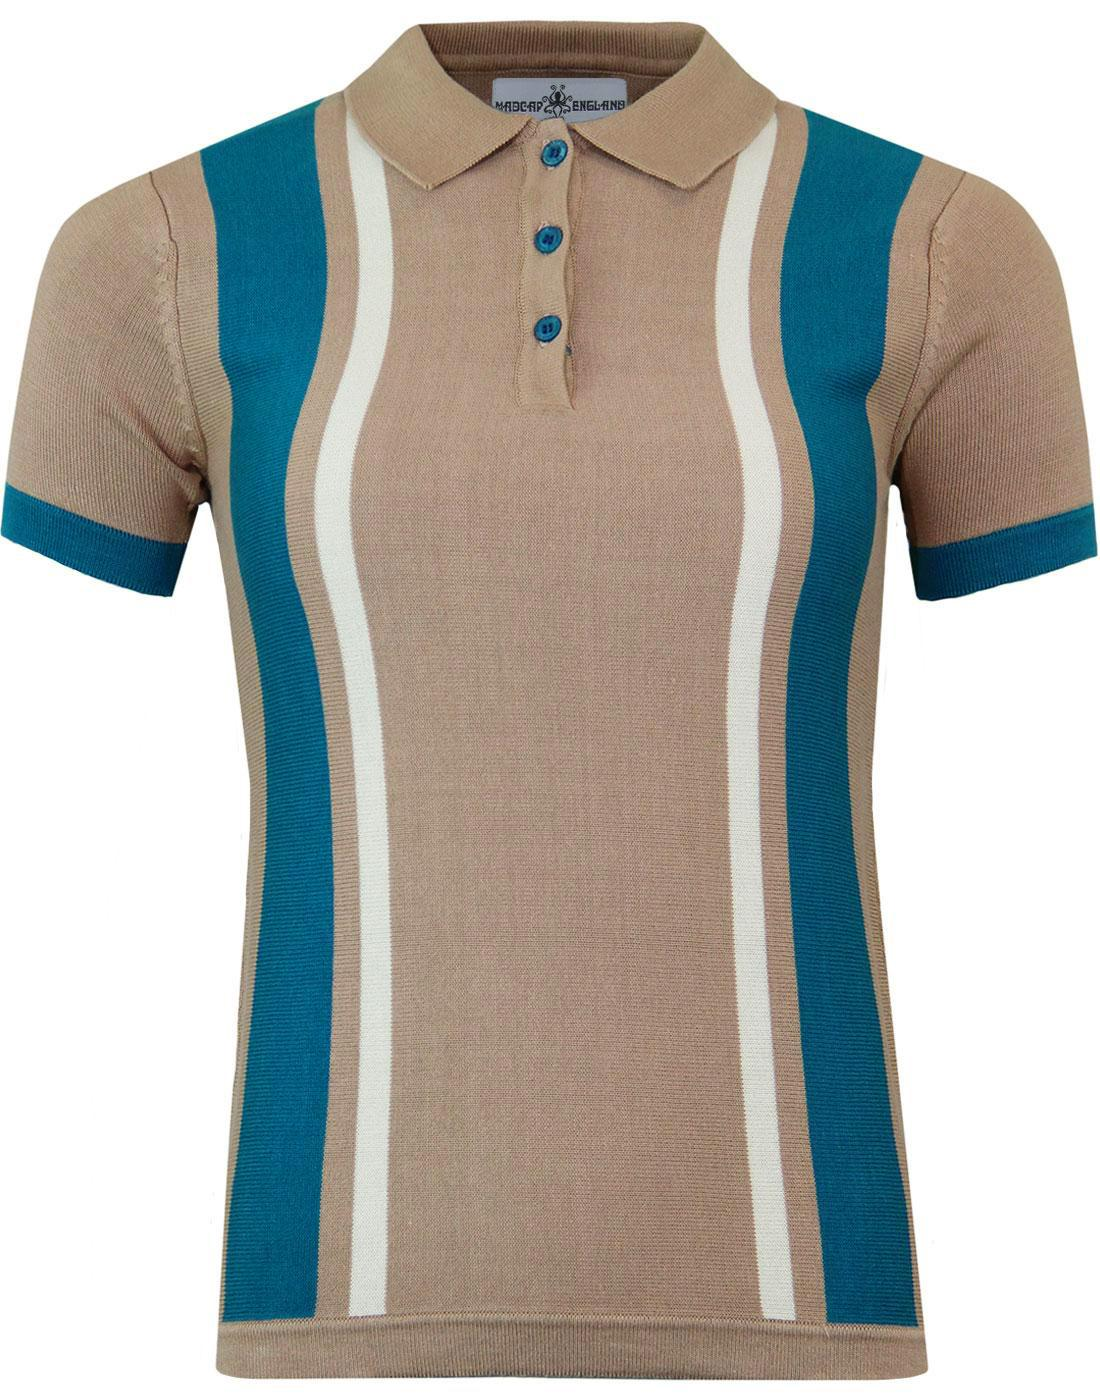 madcap england womens stripe knit mod polo almond